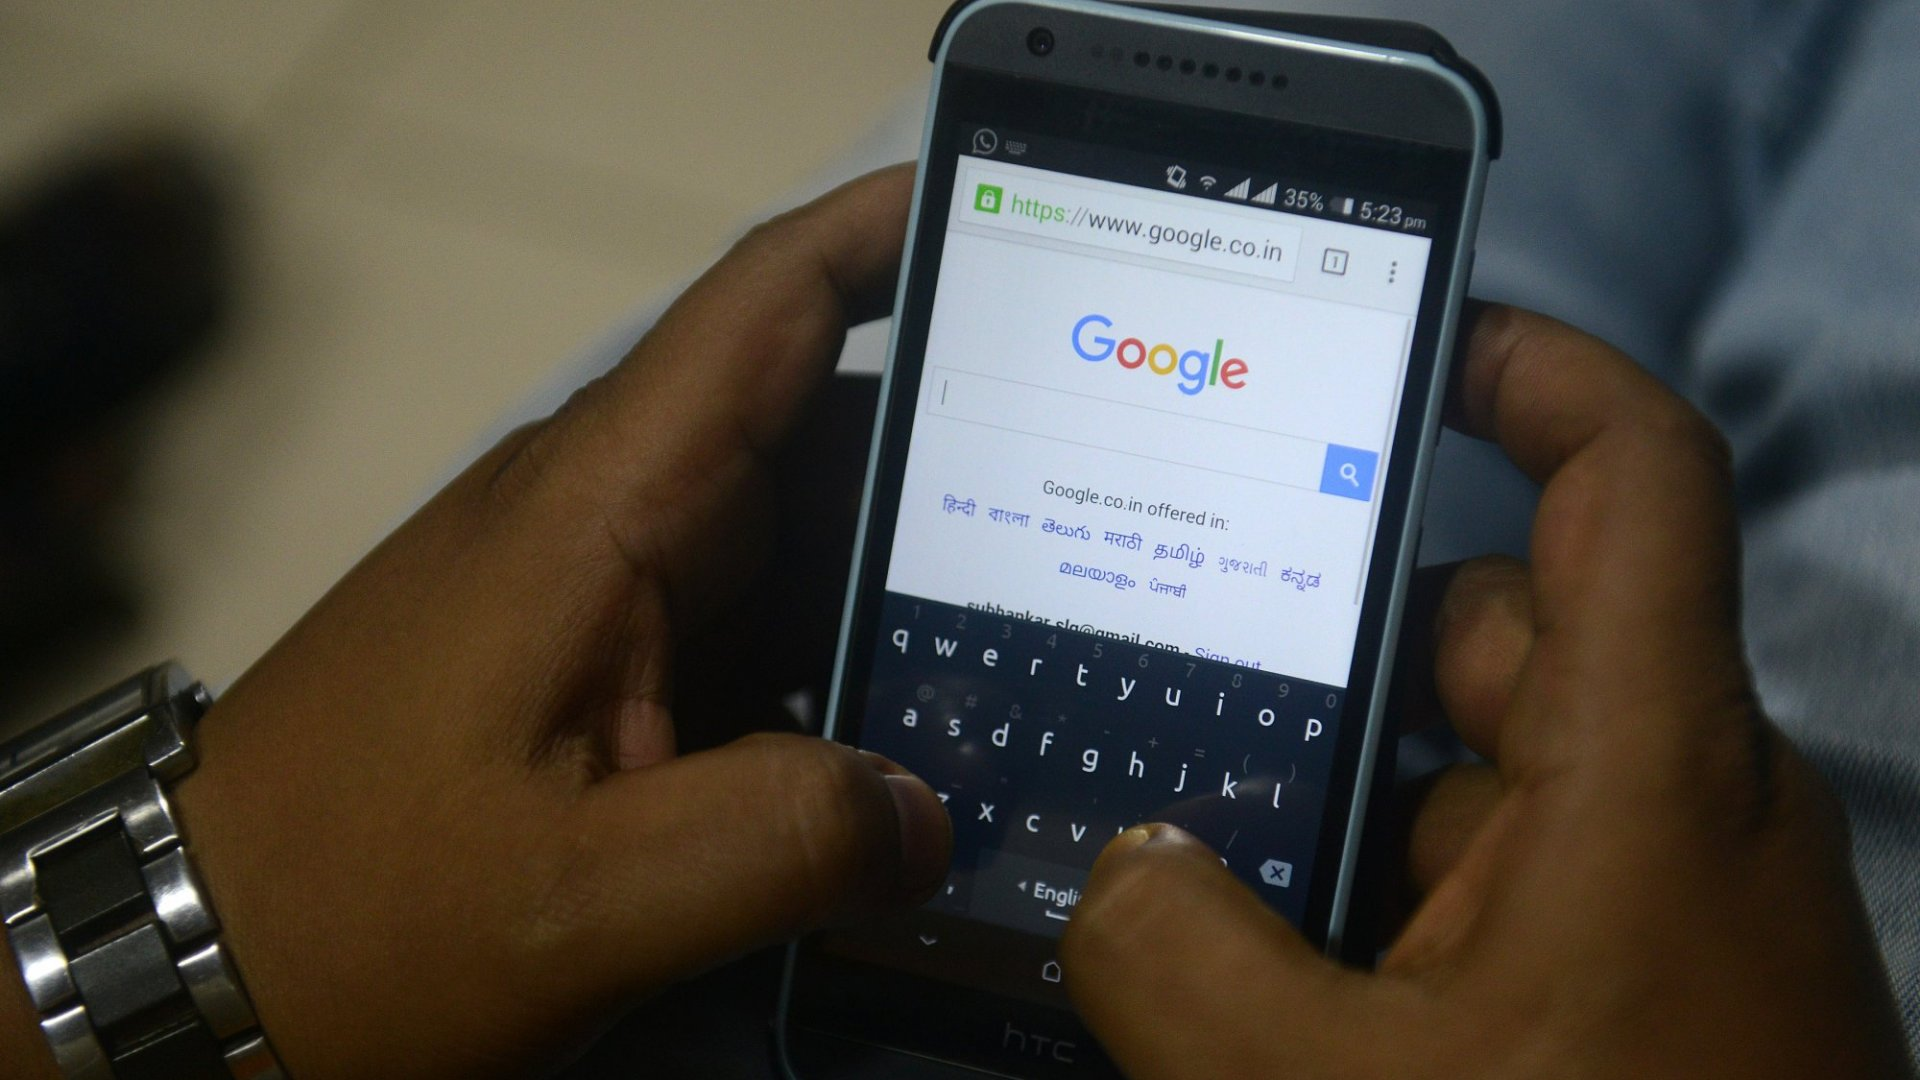 6 Ways to Make Sure Your Site is Optimized for Google's Mobile-First Indexing